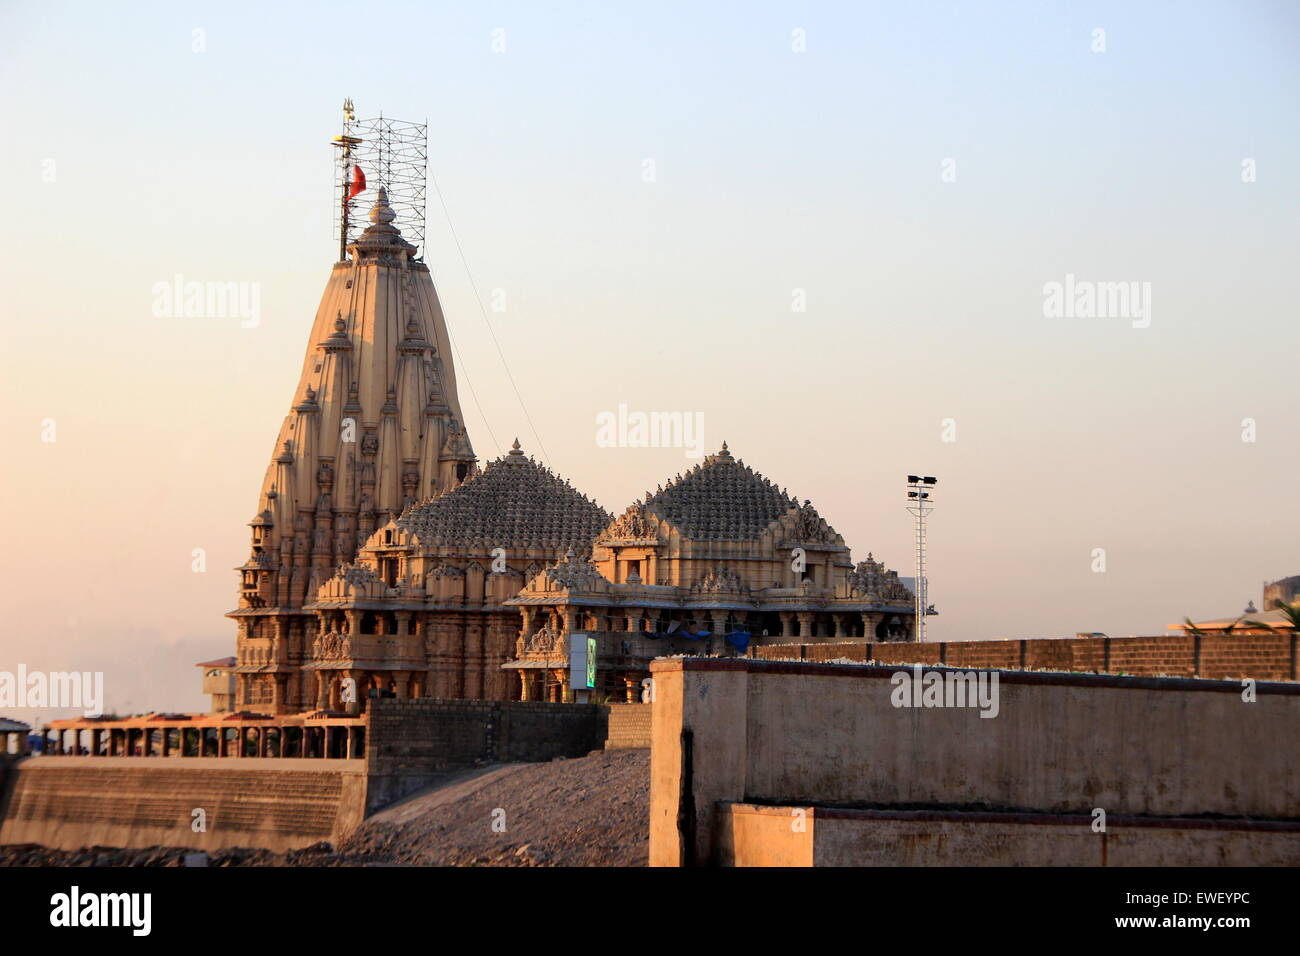 SomanathTemple -one of 12 Jyotirlingas in India- at Somanathapur in Gujarath, India, Asia - Stock Image